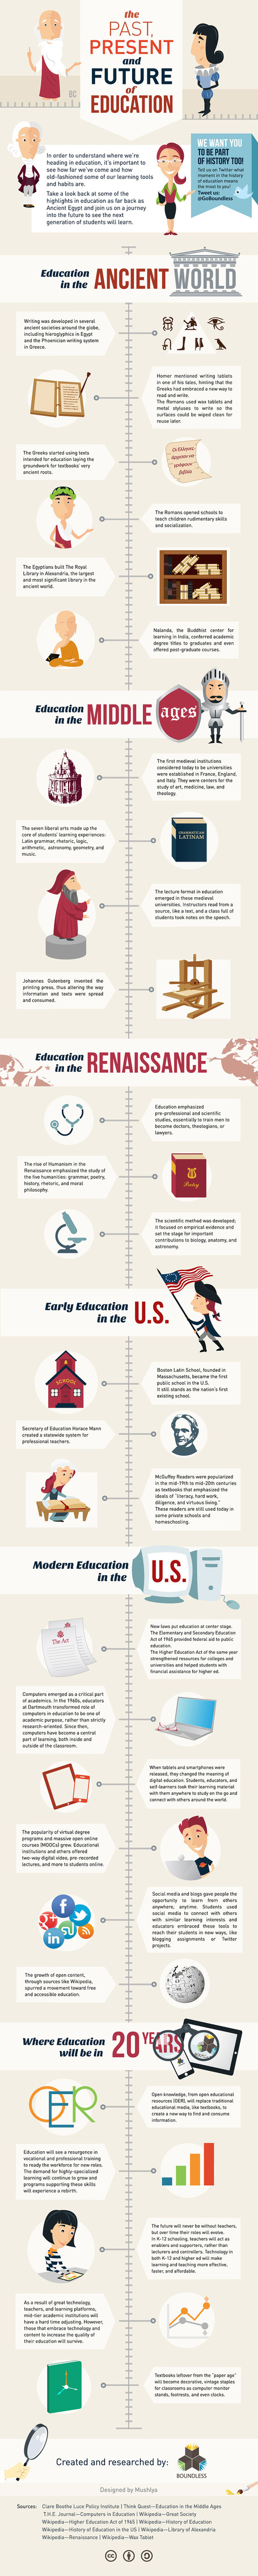 Infographic: The History of Education | Social e-learning network | Scoop.it